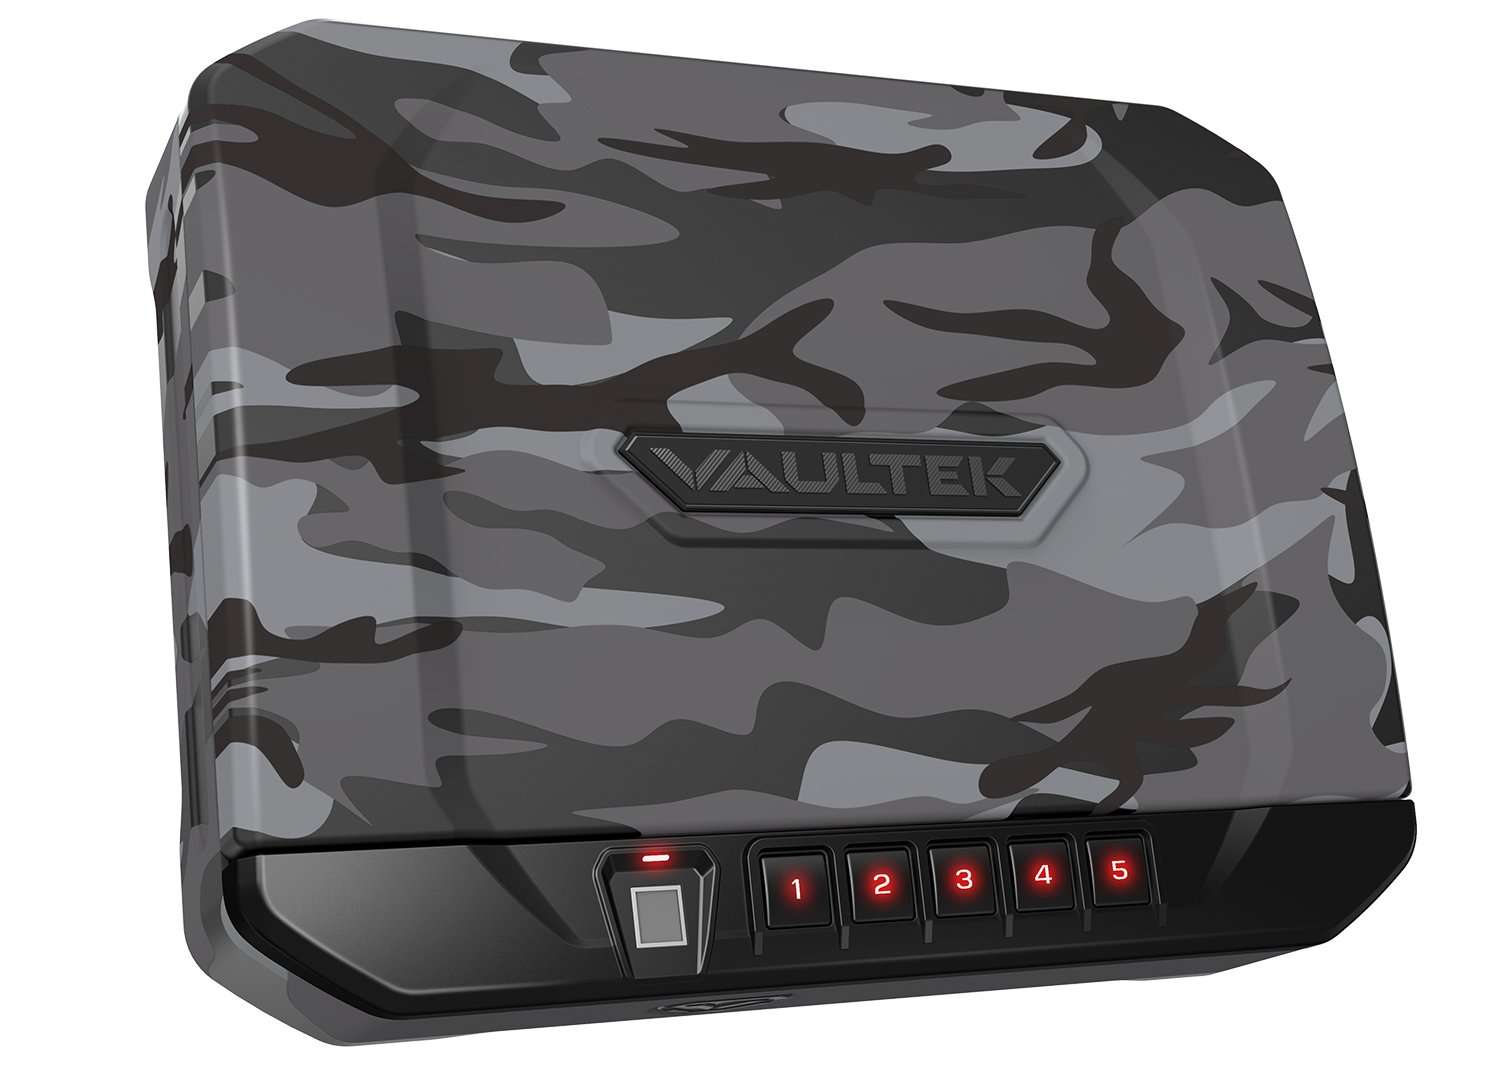 VAULTEK VT20i Biometric Handgun Safe Bluetooth Smart Pistol Safe with Auto-Open Lid and Rechargeable Battery (Urban Camo)